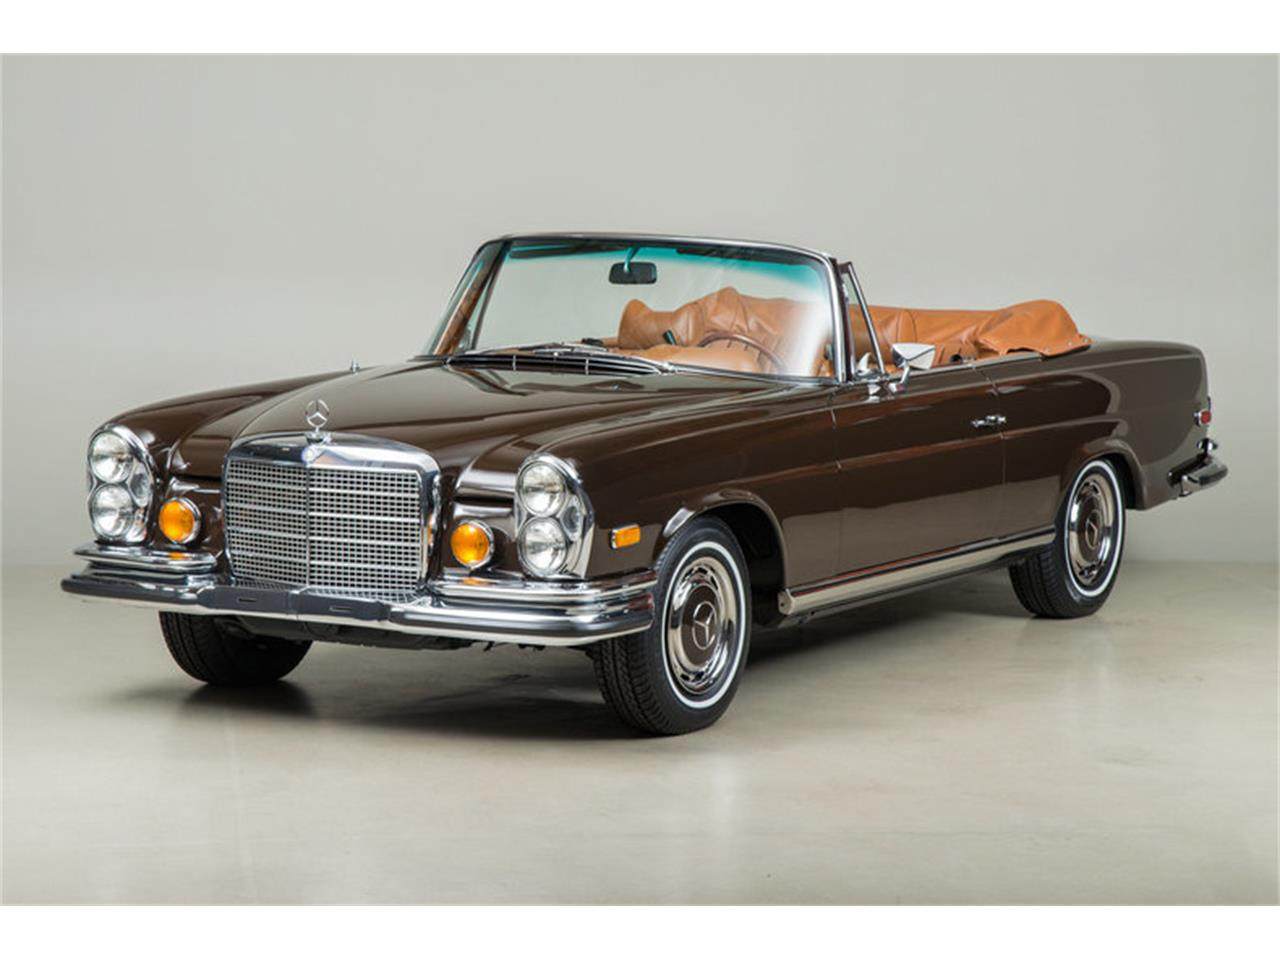 Large Picture of Classic '71 Mercedes-Benz 280 SE 3.5 Cabriolet located in California Auction Vehicle Offered by Canepa - G0JQ